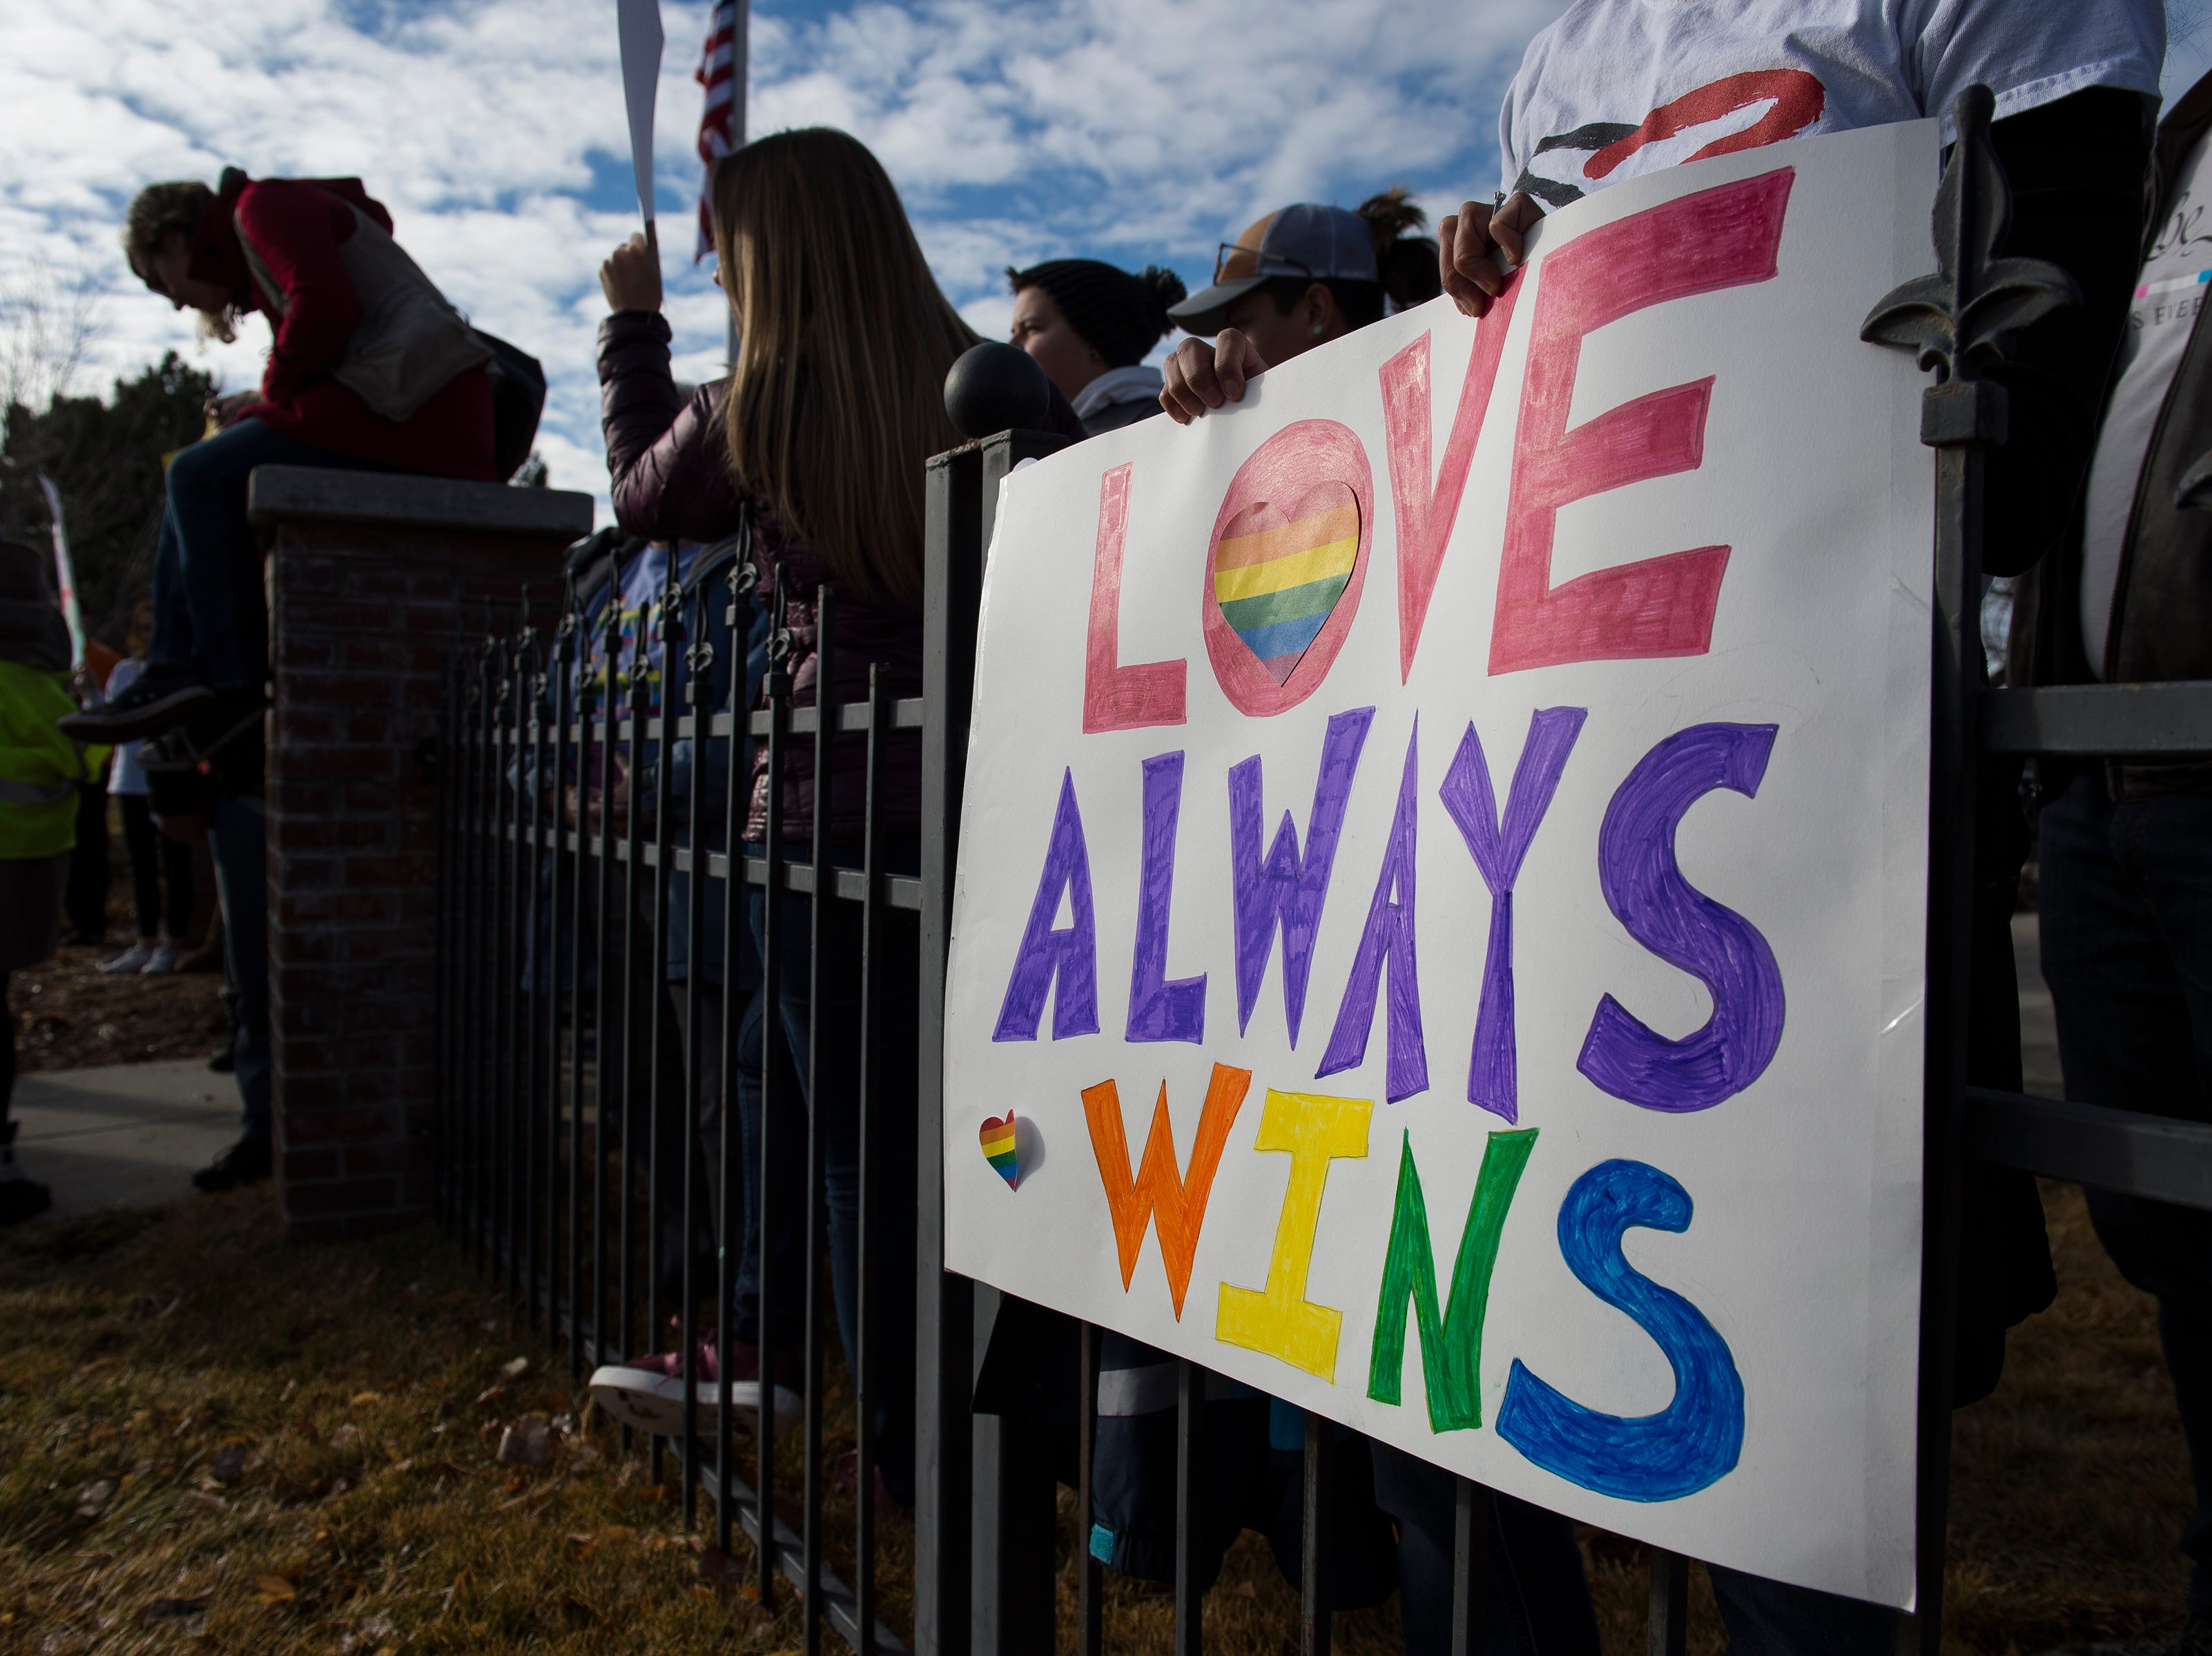 Counterprotesters gather outside the library before Drag Queen Story Hour on Saturday, Jan. 12, 2019, at the Clearview Public Library in Windsor, Colo. Drag Queen Story Hour is a program put on by SPLASH, an LGBTQ+ youth outreach organization.